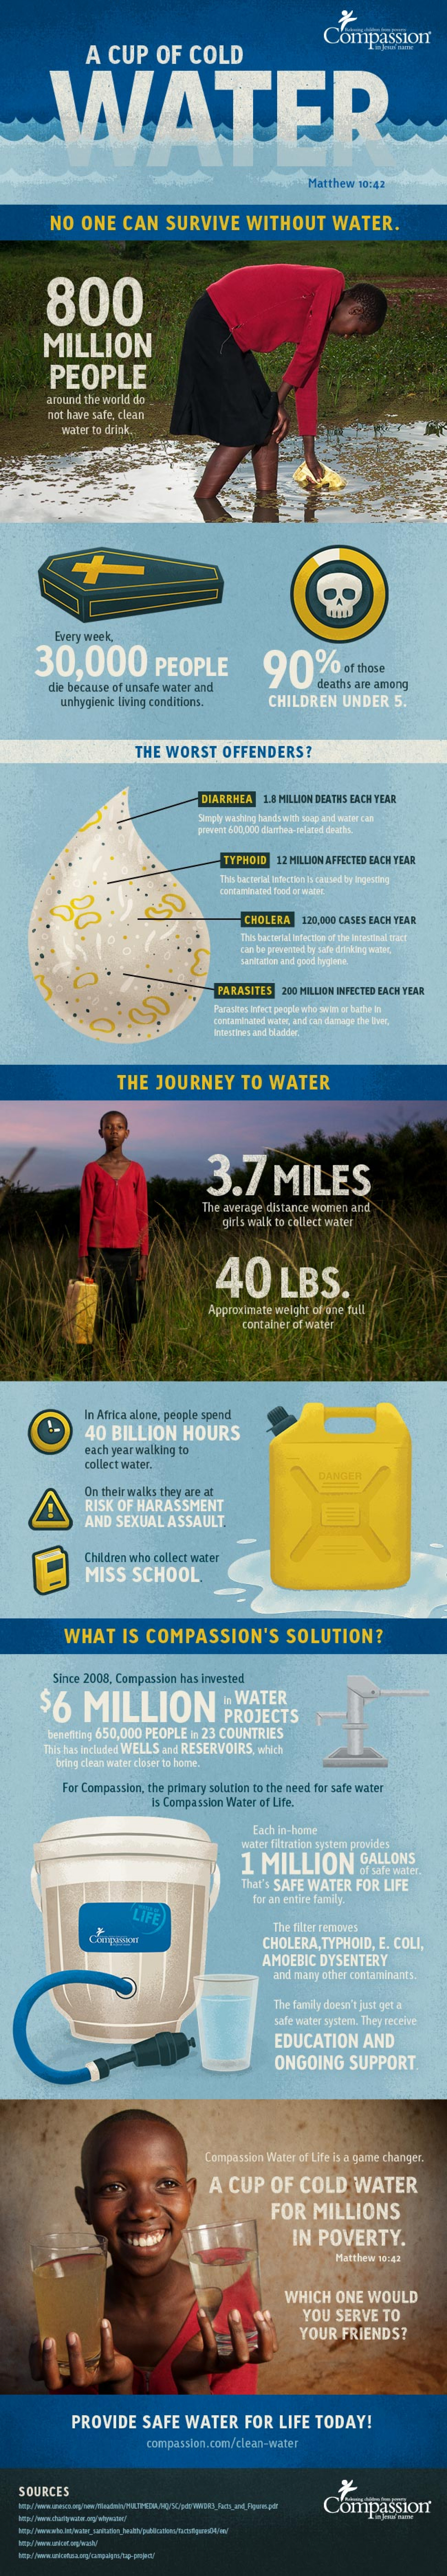 A Cup of Cold Water Infographic